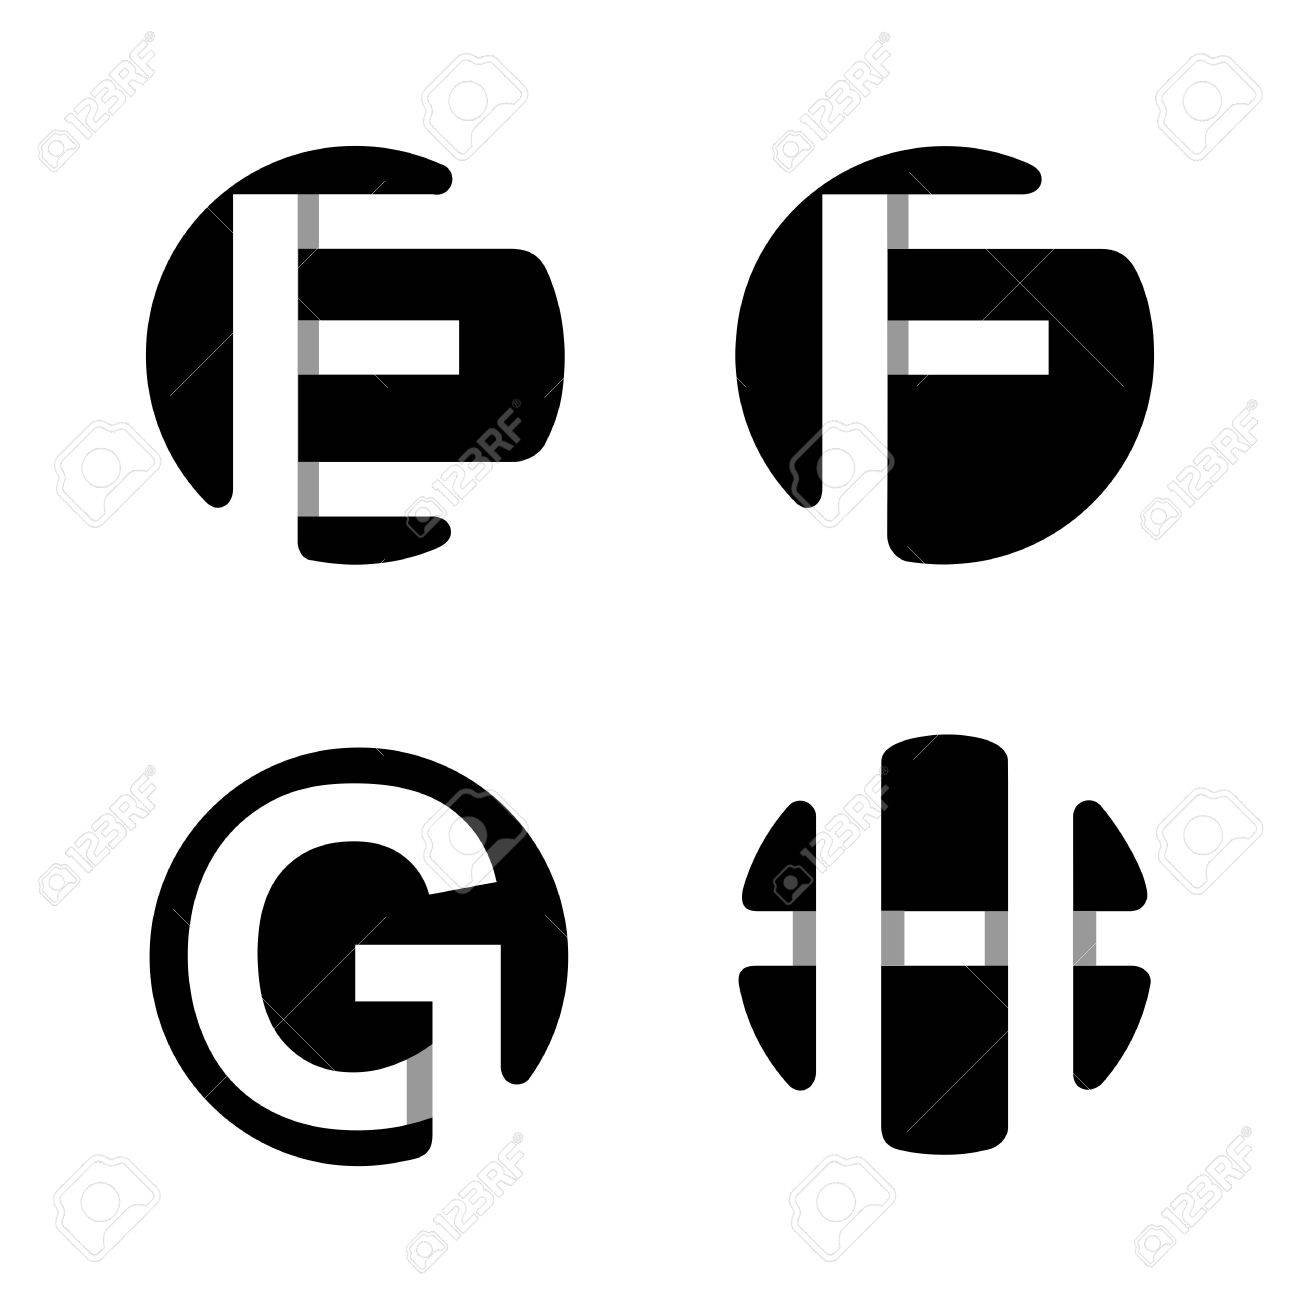 capital letters e f g h from white stripe in a black